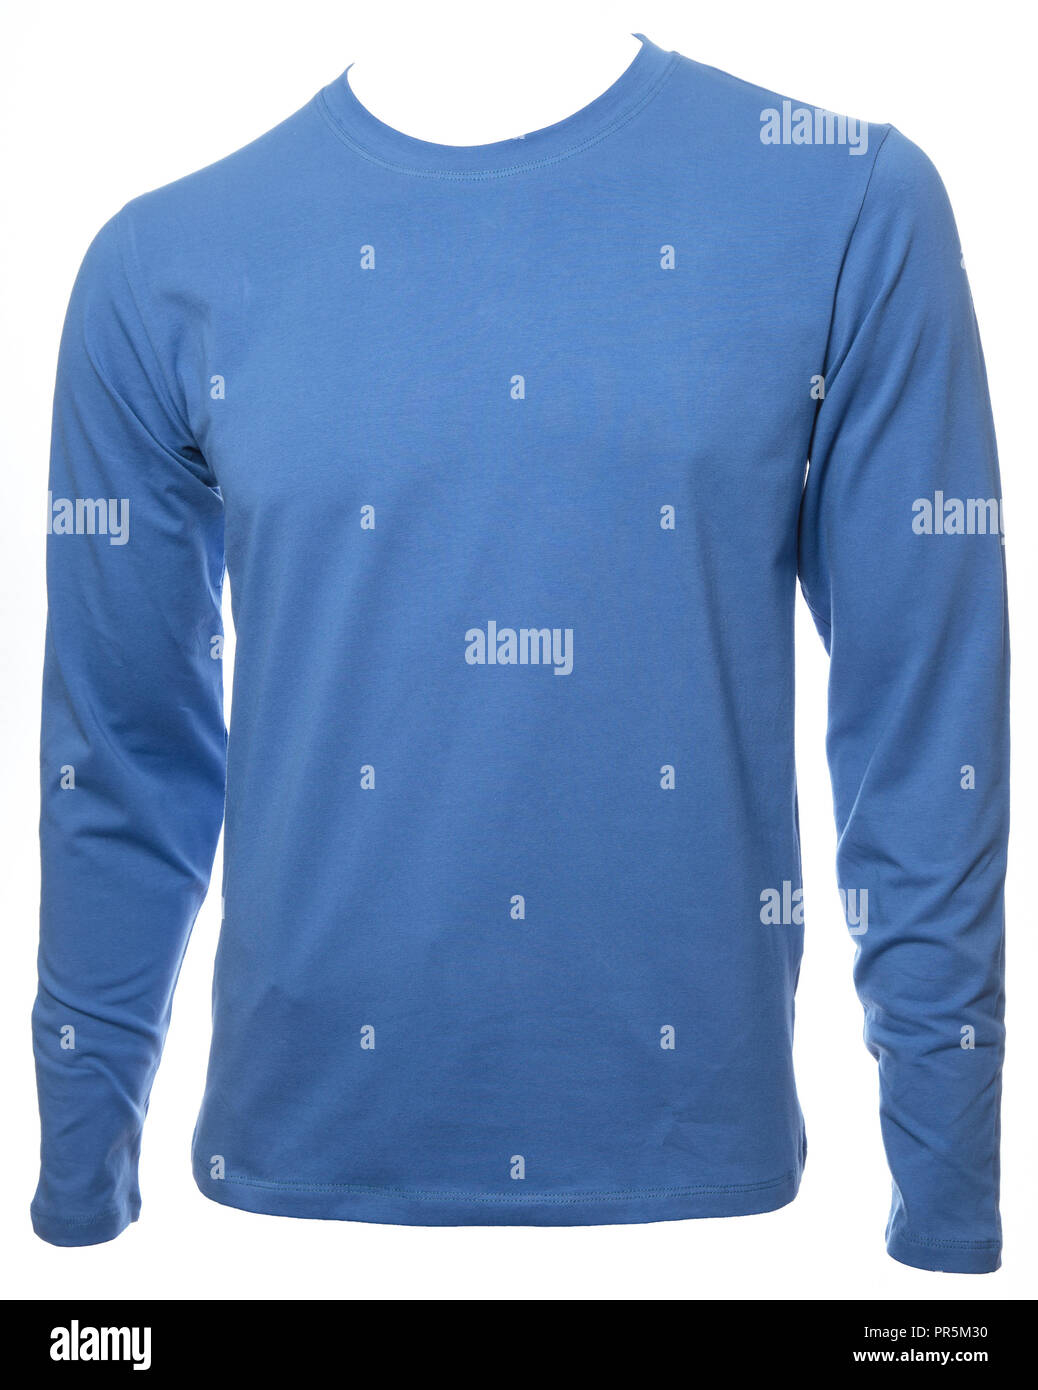 Blue Plain Long Sleeved Cotton T Shirt Template Isolated On A White Background